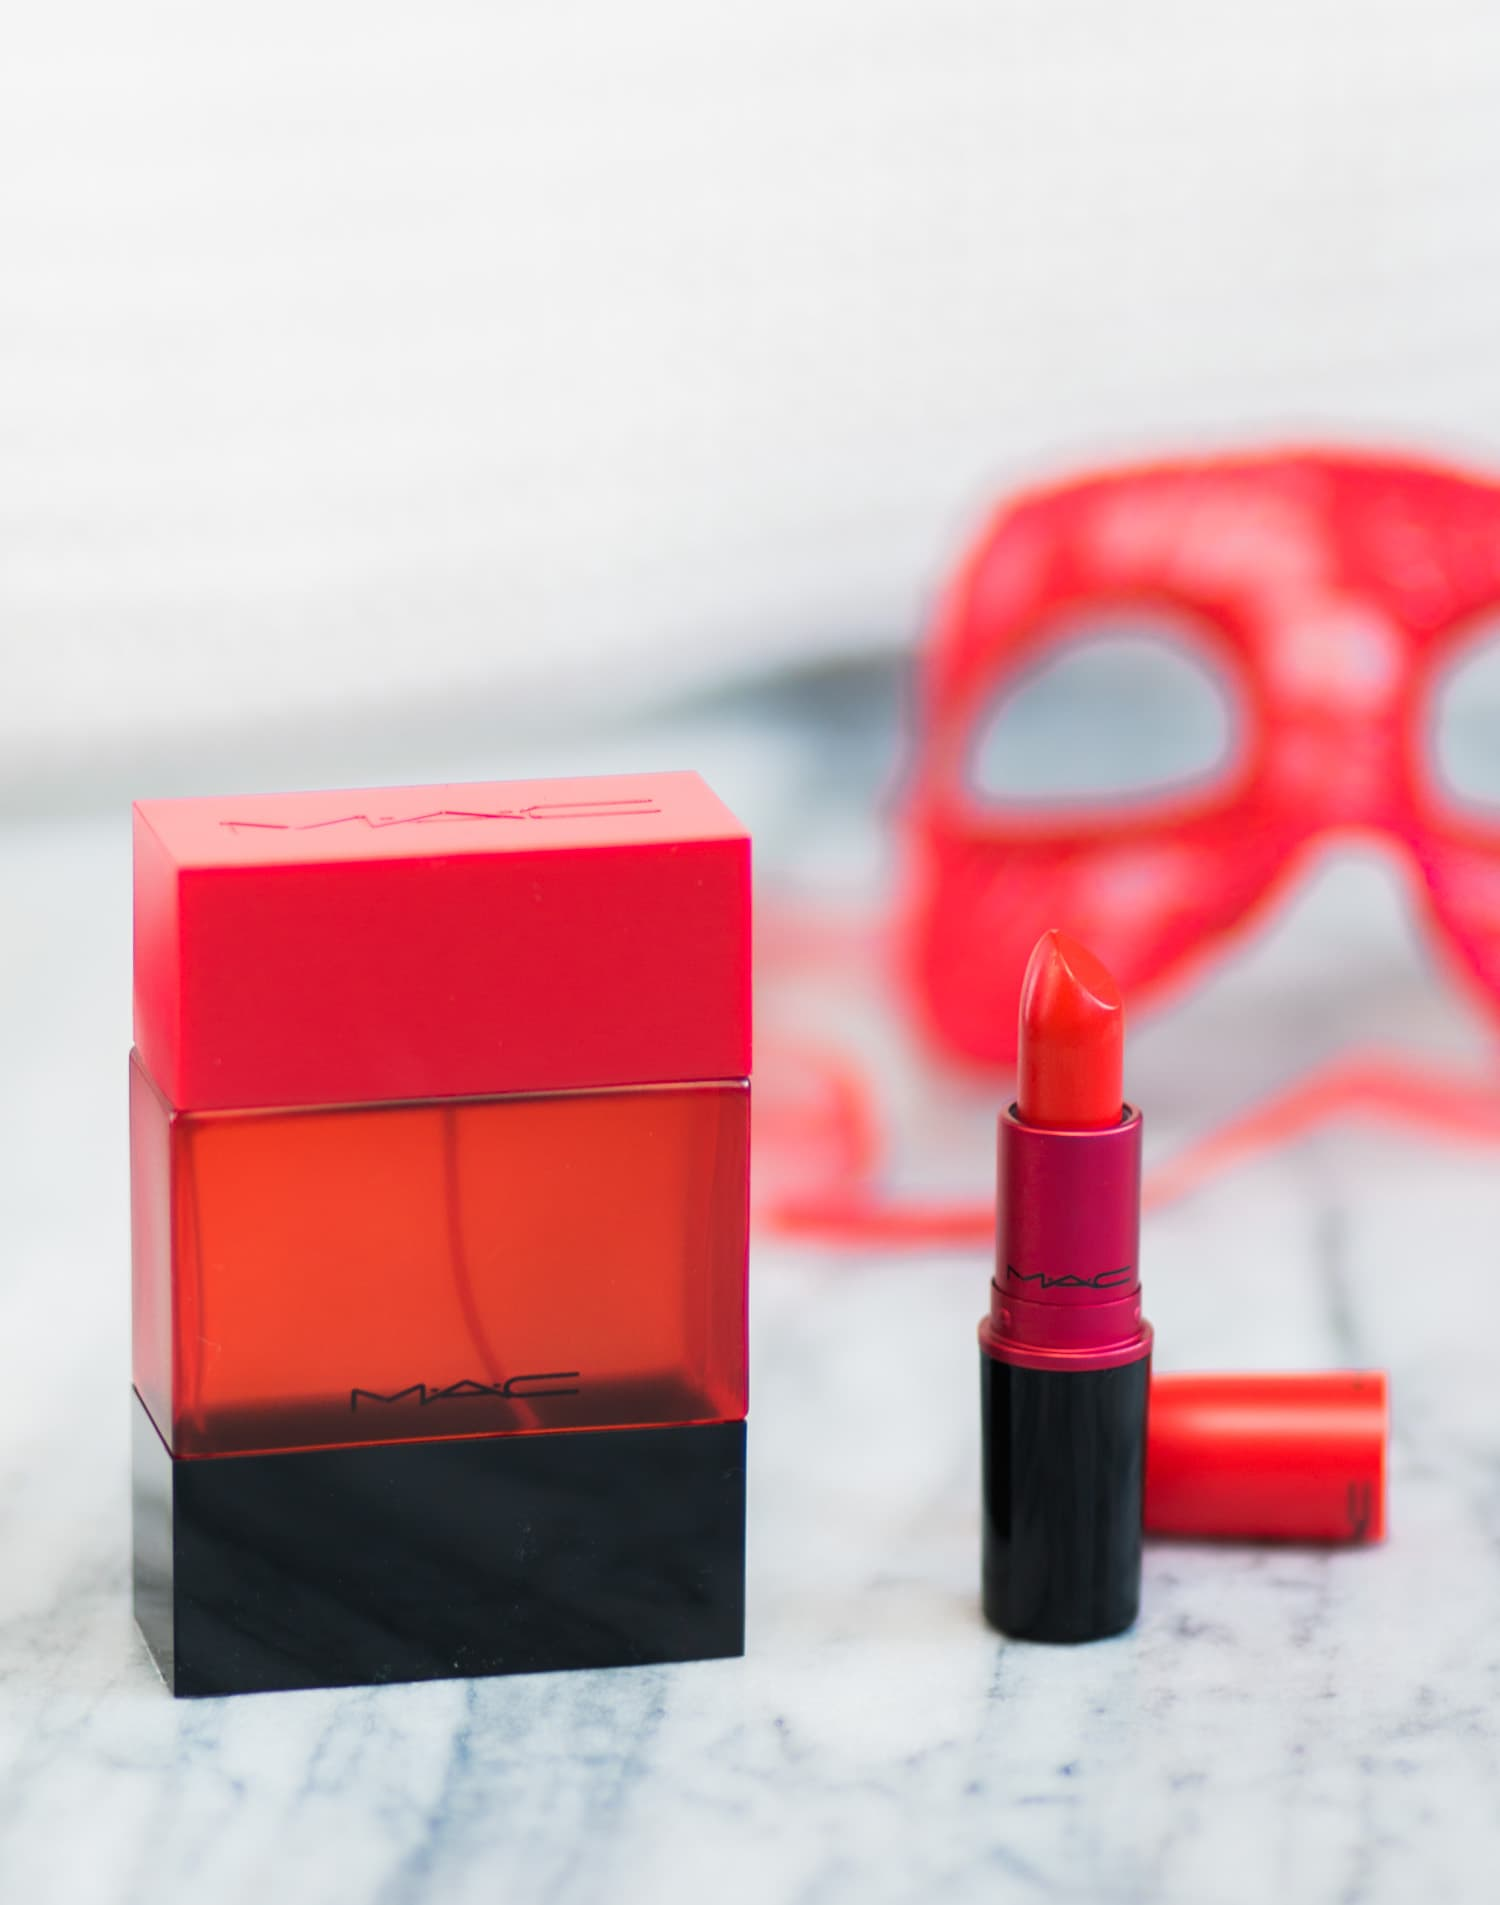 A full review of the MAC Shadescents Lady Danger perfume and lipstick by Orlando, Florida, beauty blogger Ashley Brooke Nicholas